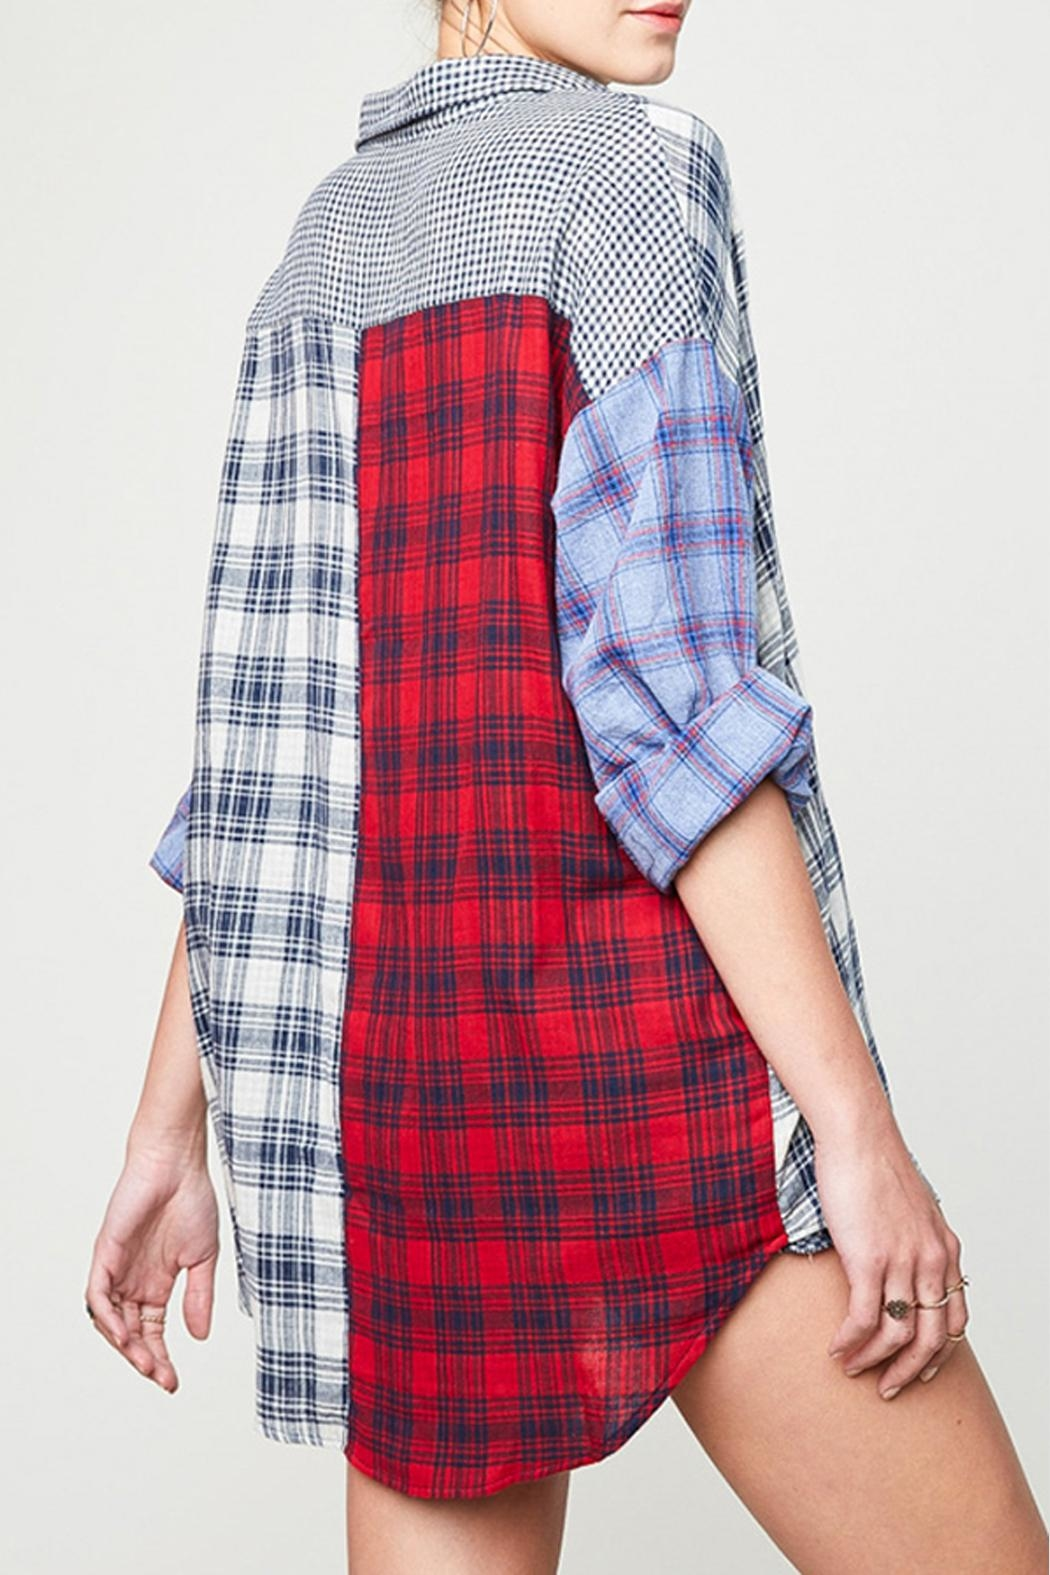 Hayden Los Angeles Mixed Plaid Shirt - Side Cropped Image